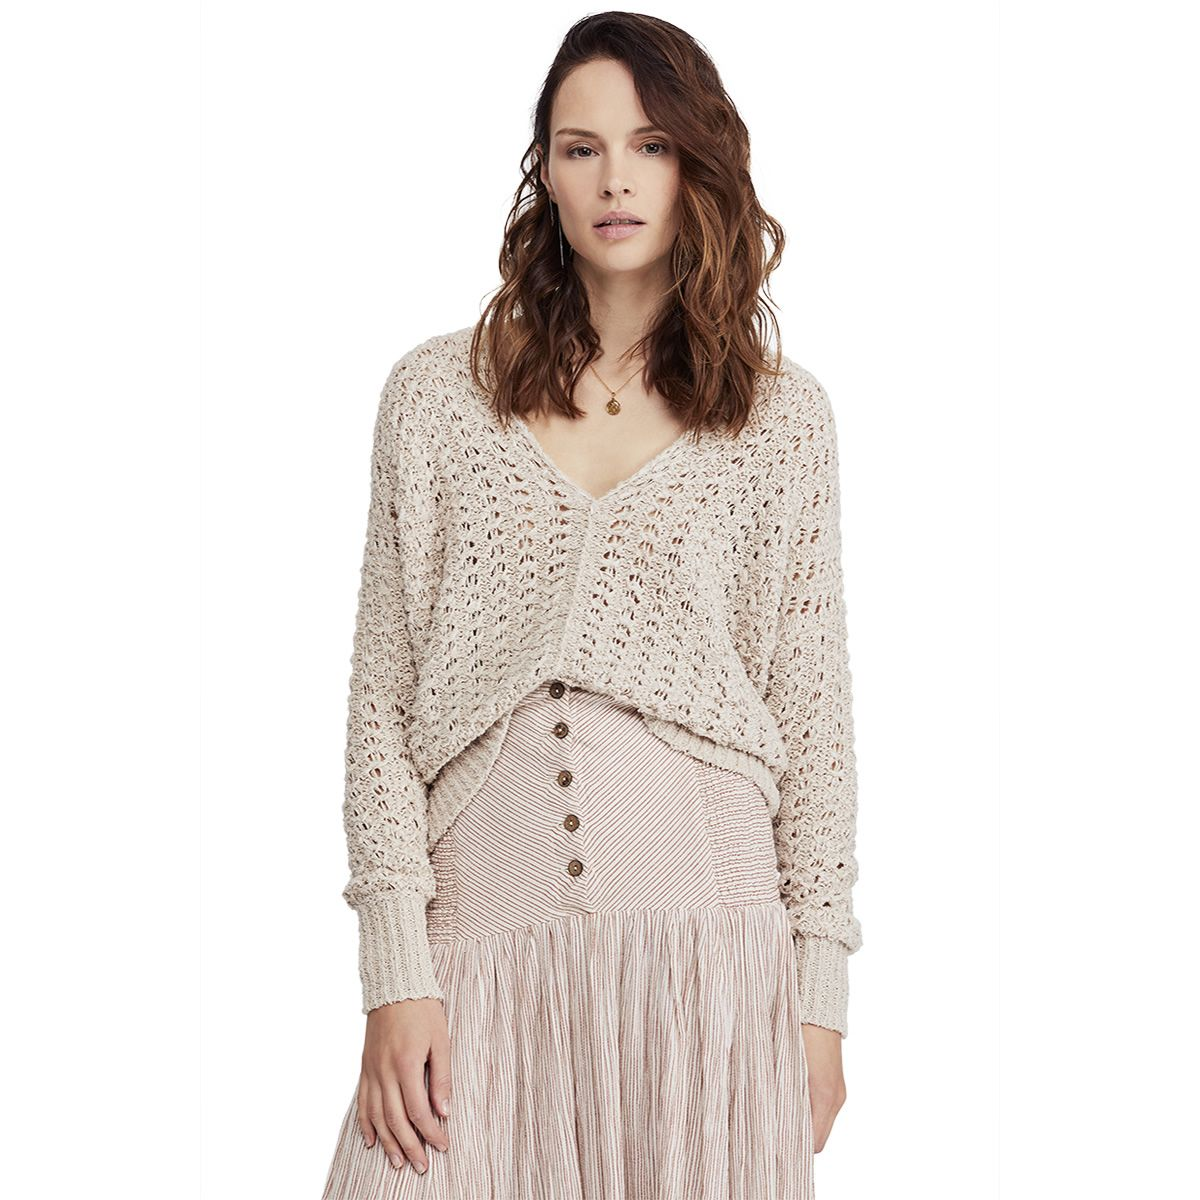 5db197f3b8a4 Free People Clothing - Womens Apparel - Macy s